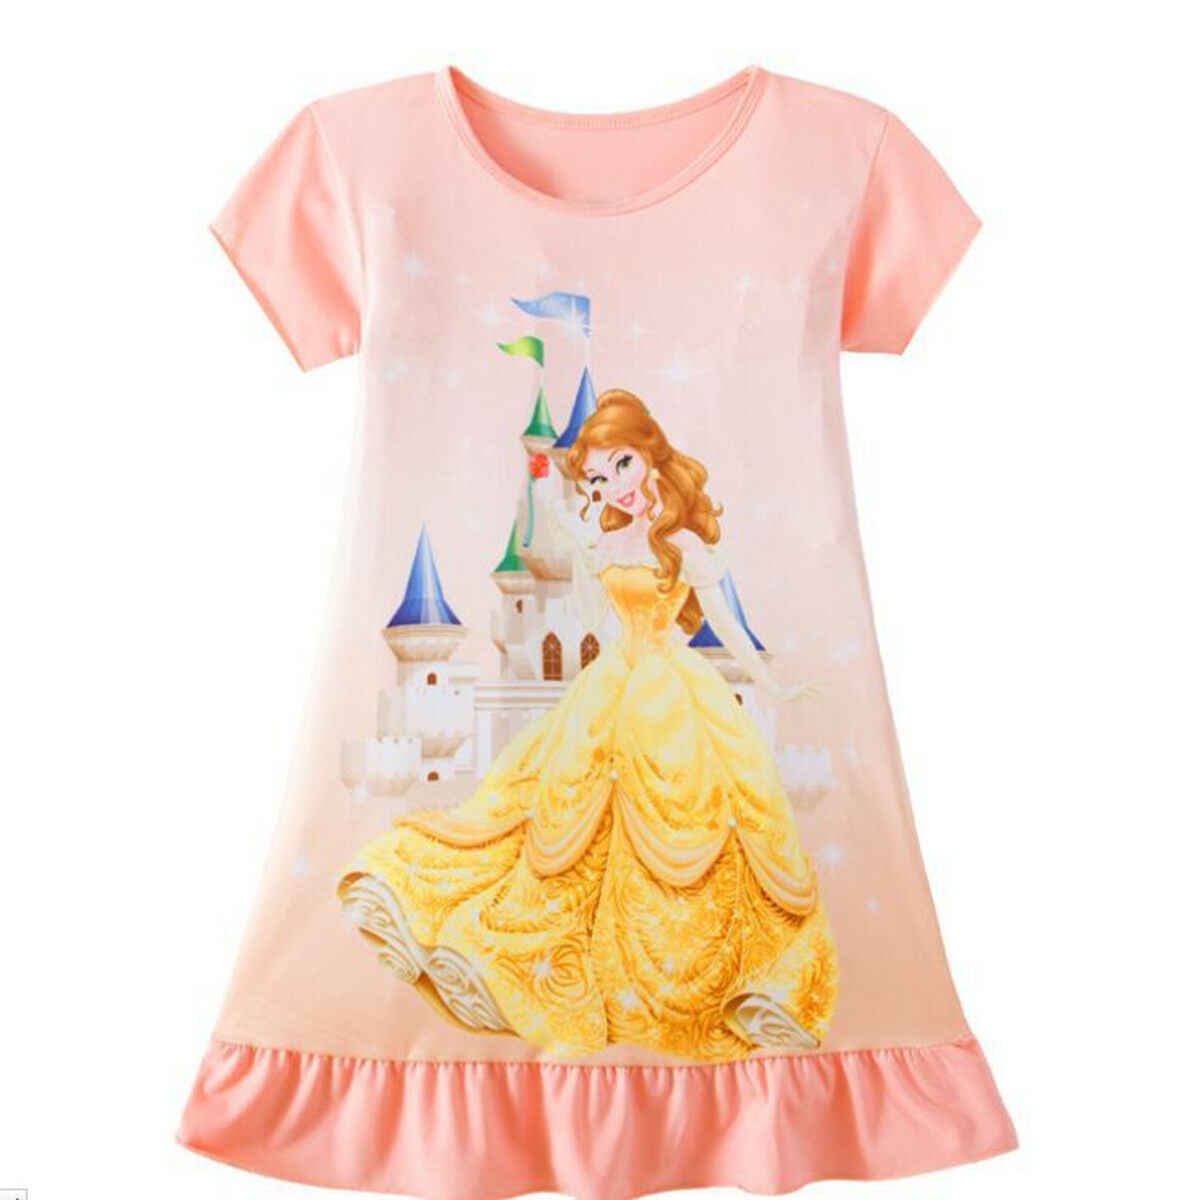 Toddler Kid Baby Girl Rapunzel Belle Aurora Princess Print Clothes Party Dress Party 1 birthday Wedding New Year Baby Dress